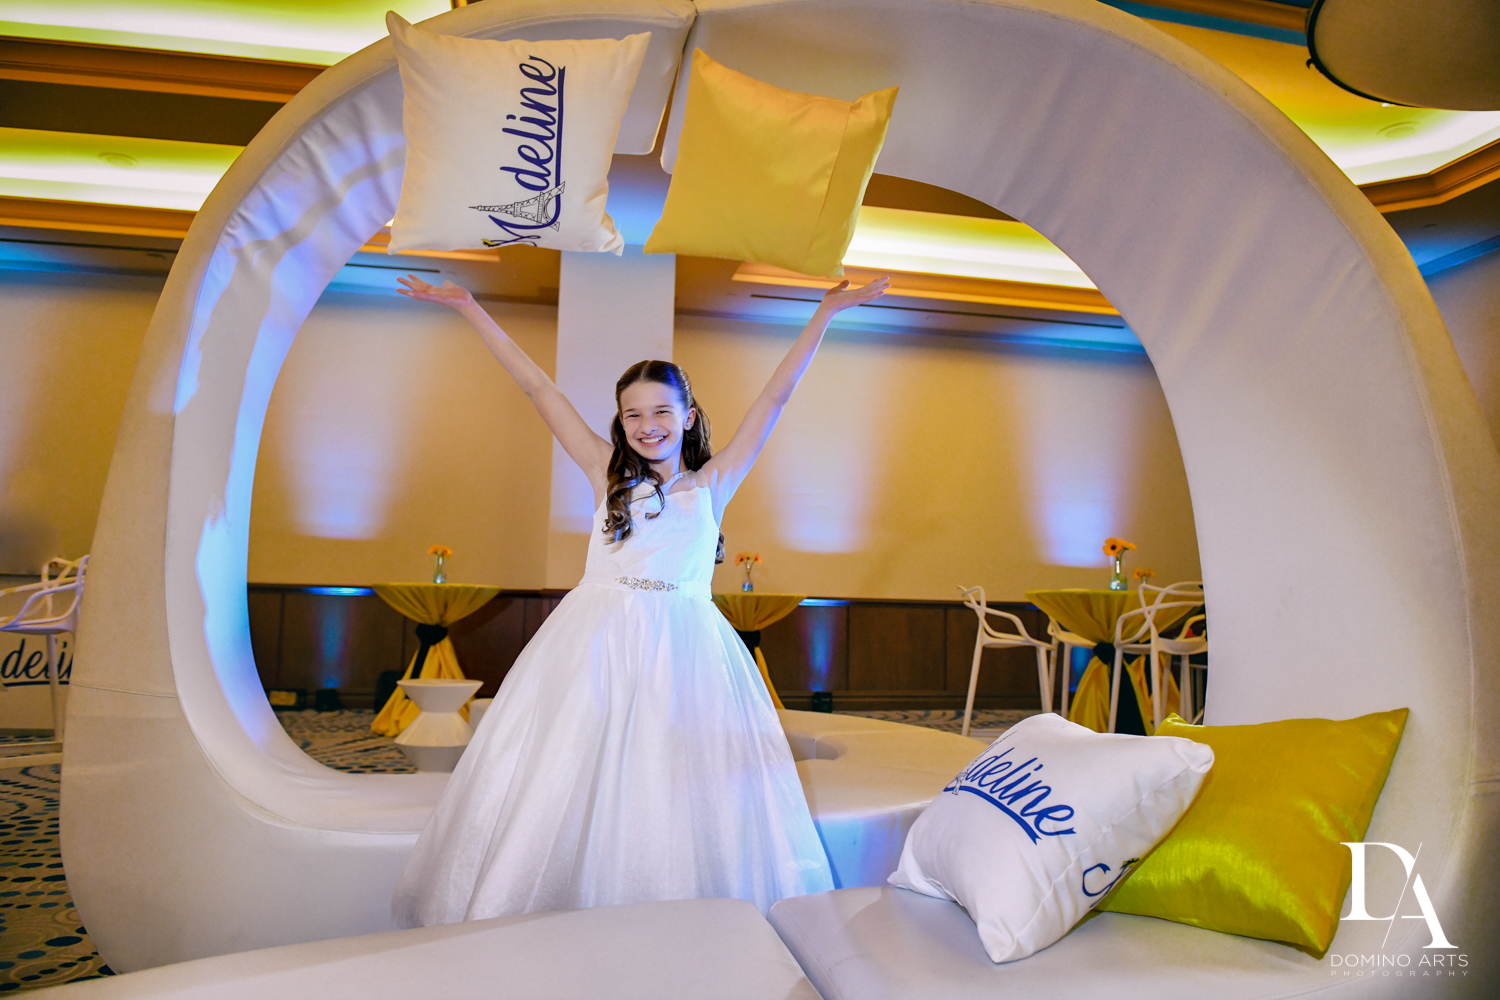 fun pictures at Madeline in Paris theme Bat Mitzvah at Boca Raton Resort and Club by Domino Arts Photography